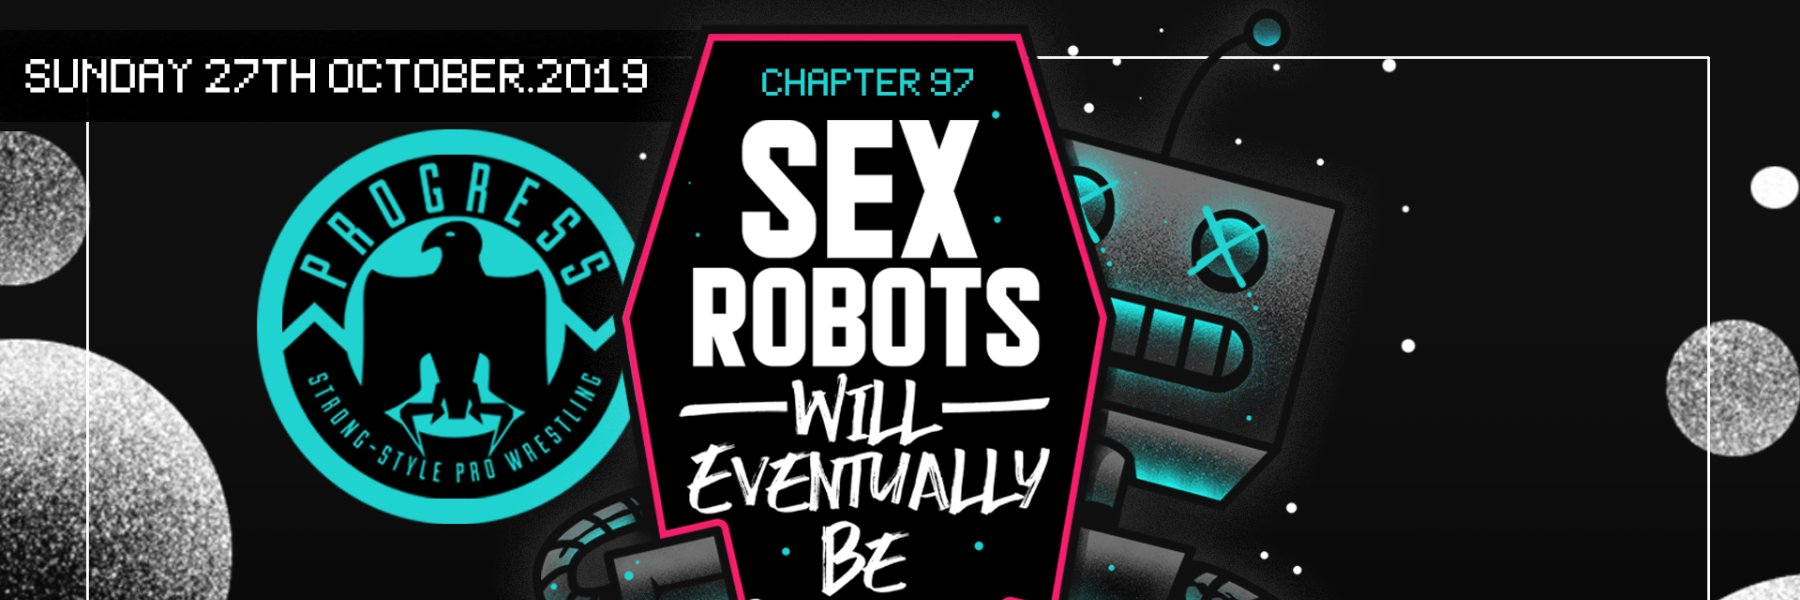 NEW - Chapter 97: Sex Robots Will Eventually Be Capable Of Murder